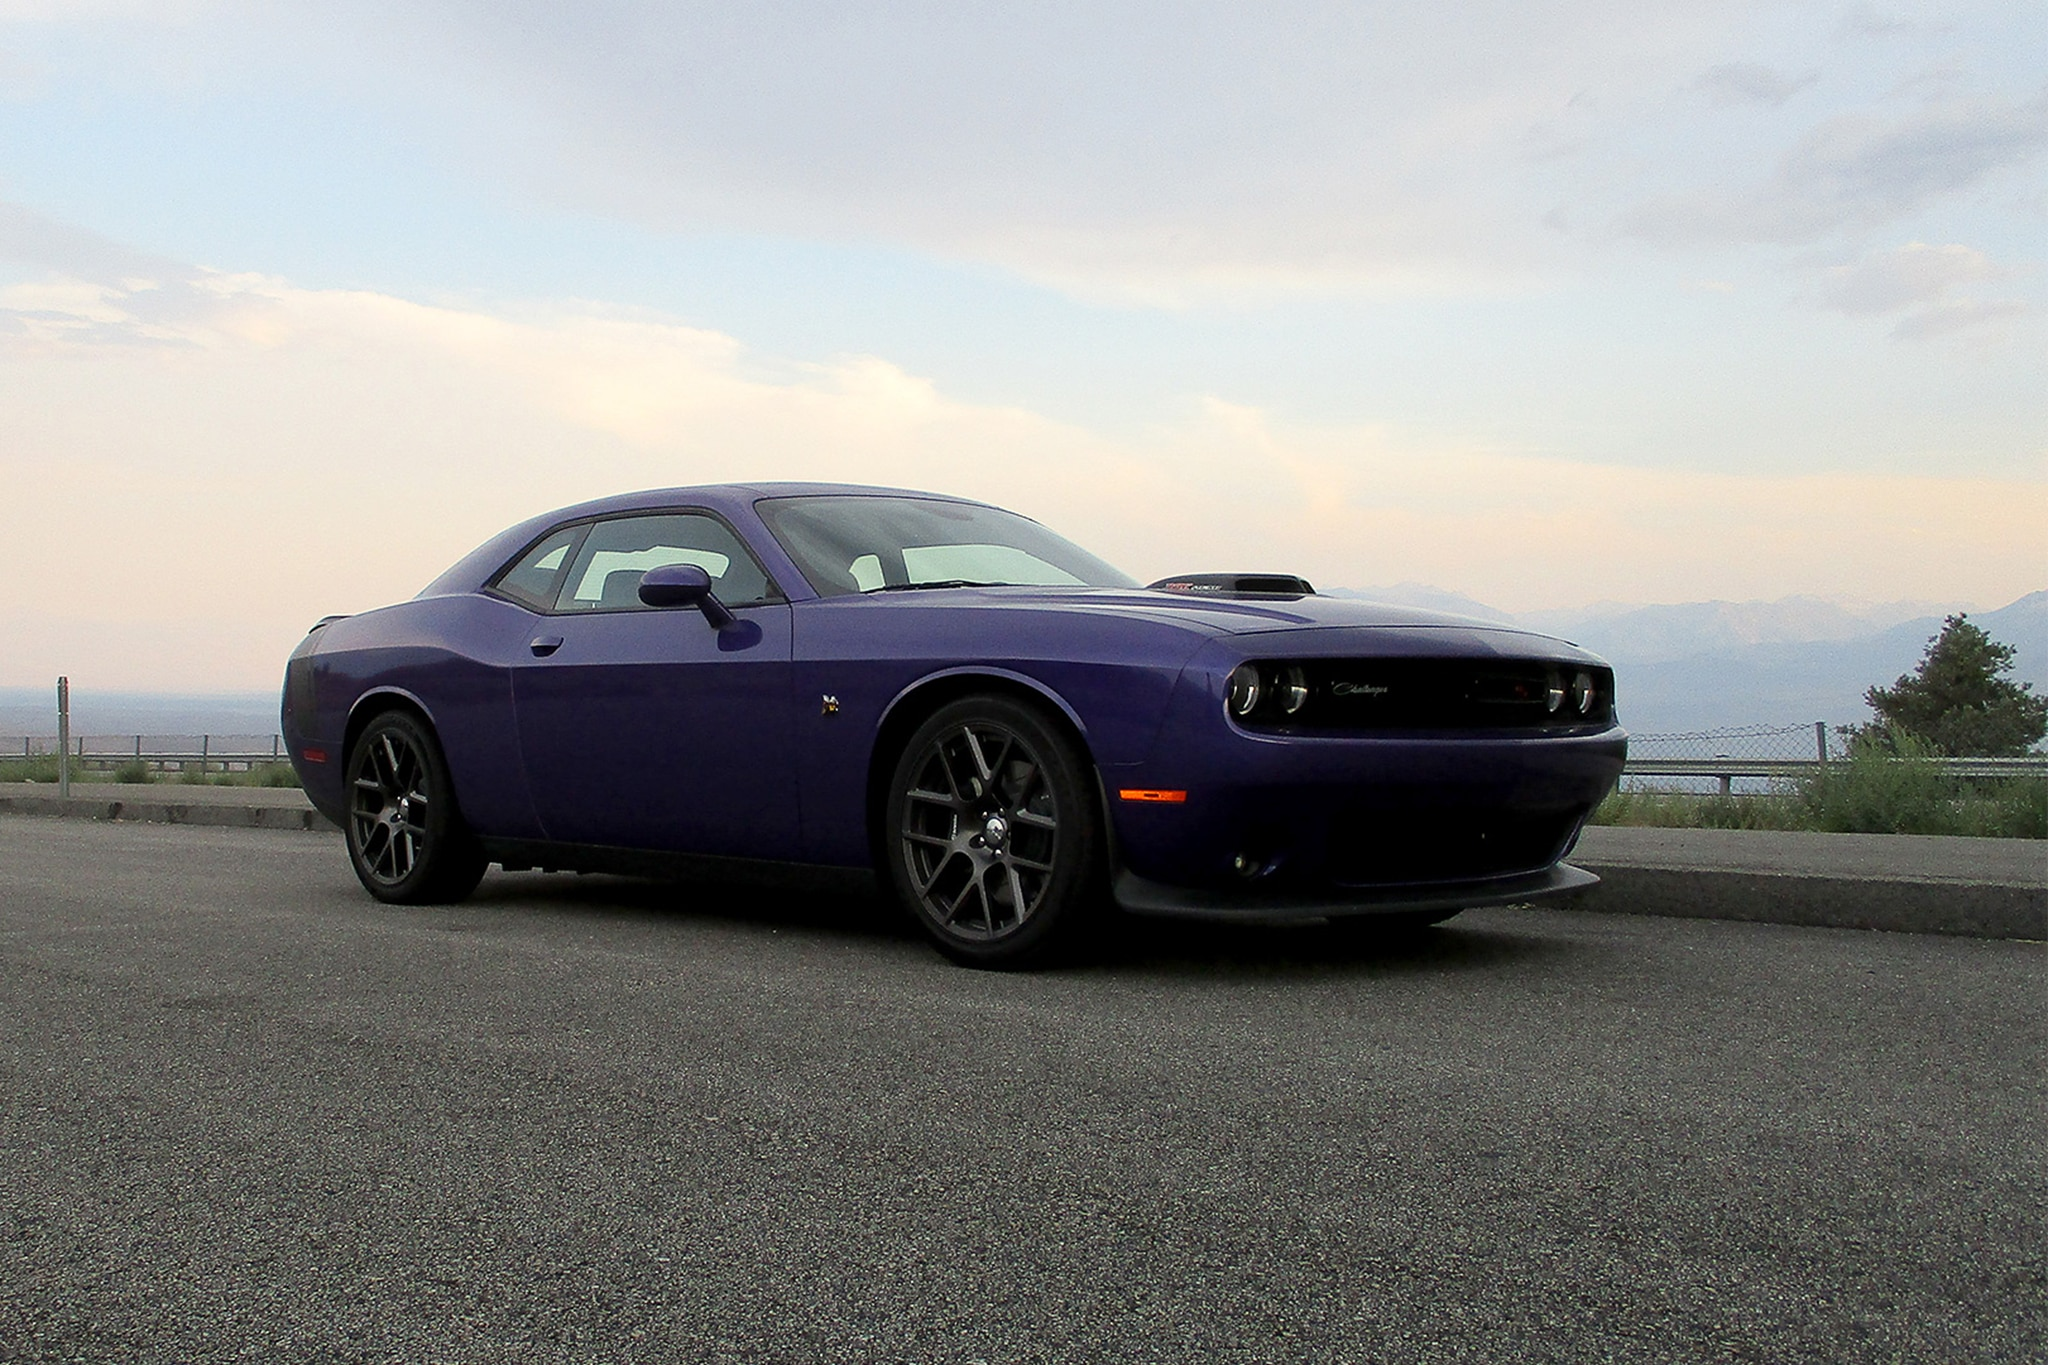 392 Hemi Scat Pack Shaker >> 2016 Dodge Challenger 392 Hemi Scat Pack Shaker One Week With | Automobile Magazine